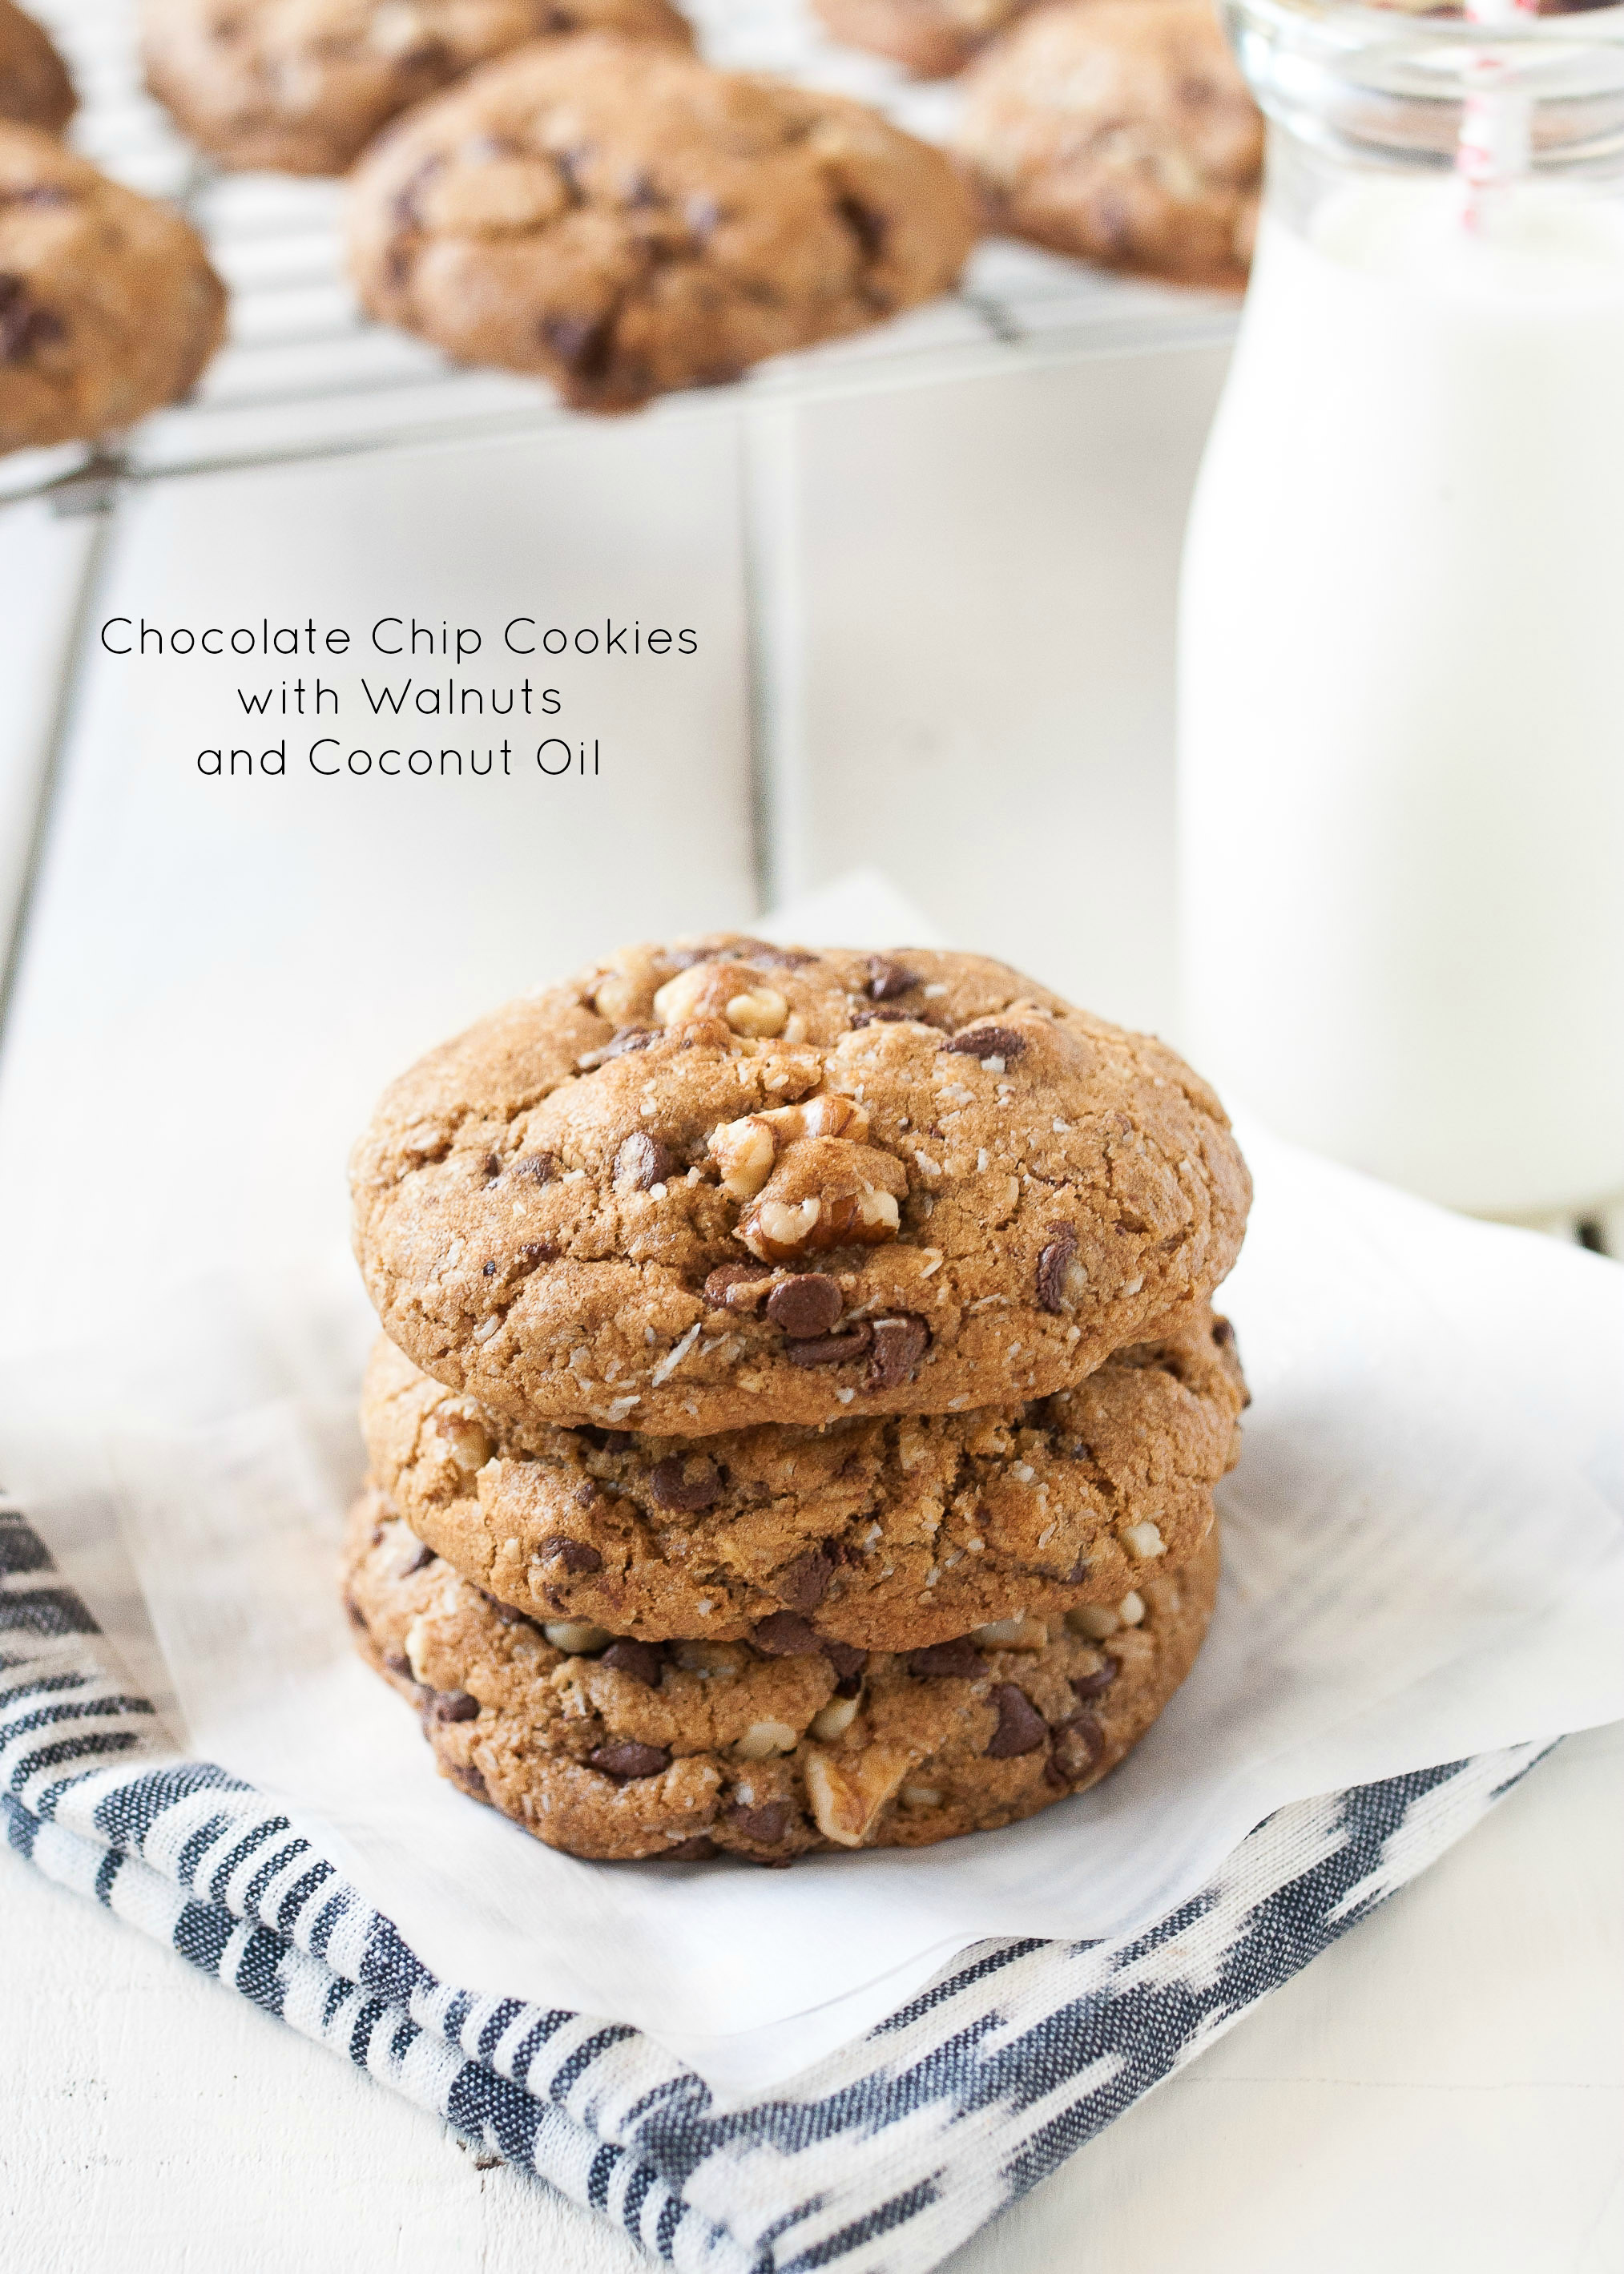 Chocolate Chip Cookies With Walnuts and Coconut Oil-1-5